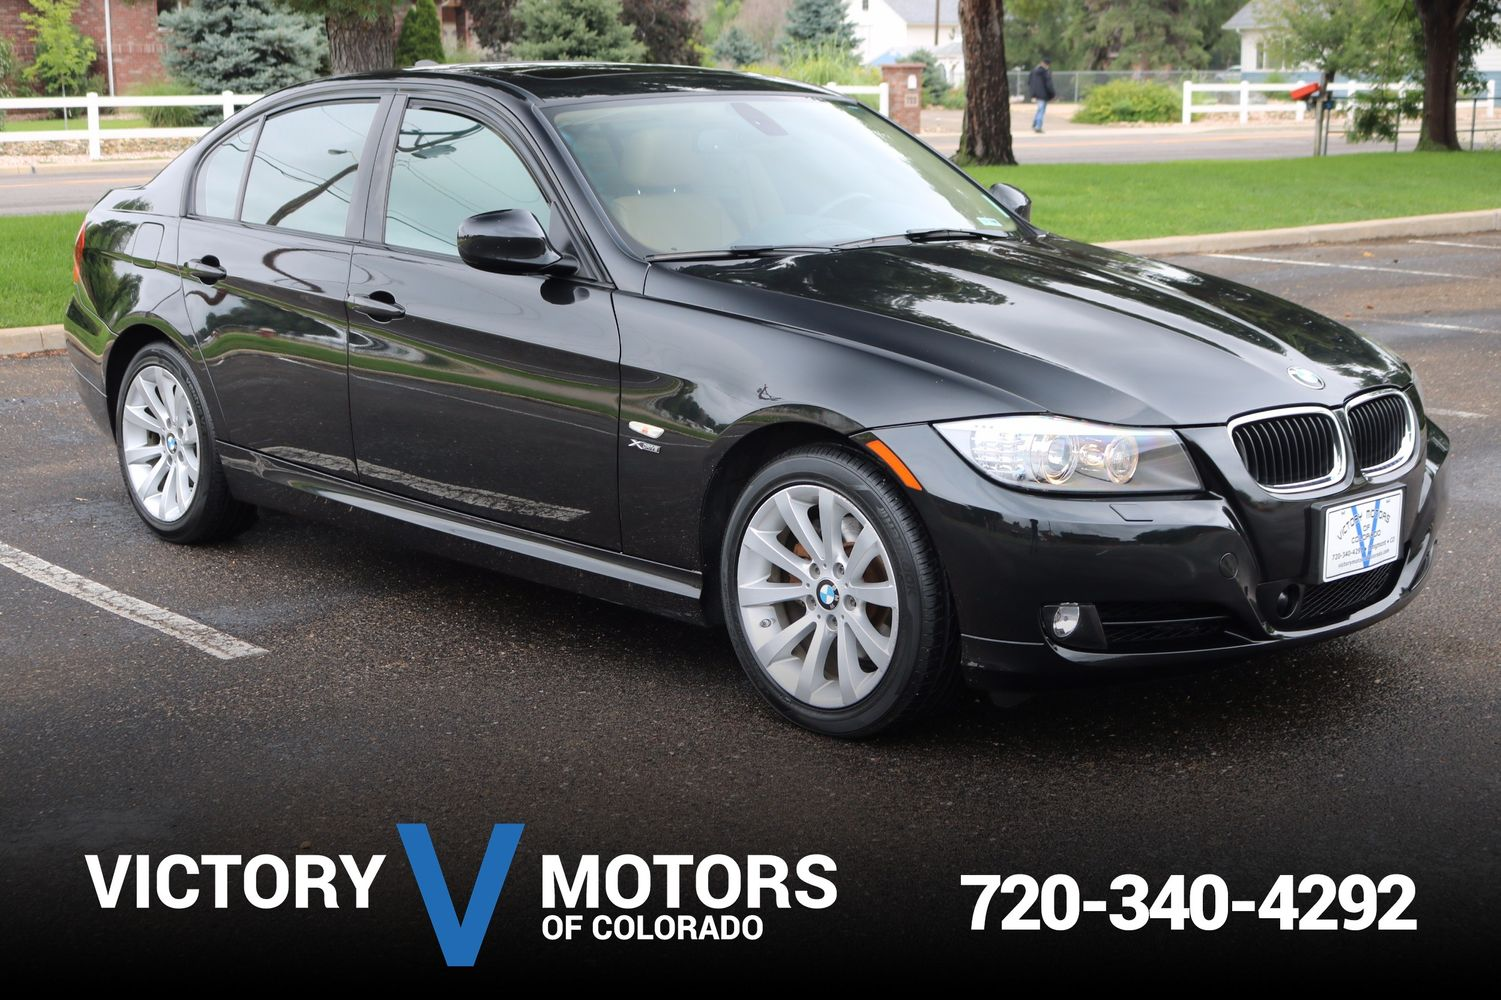 2011 BMW 328i X-Drive AWD | Victory Motors of Colorado